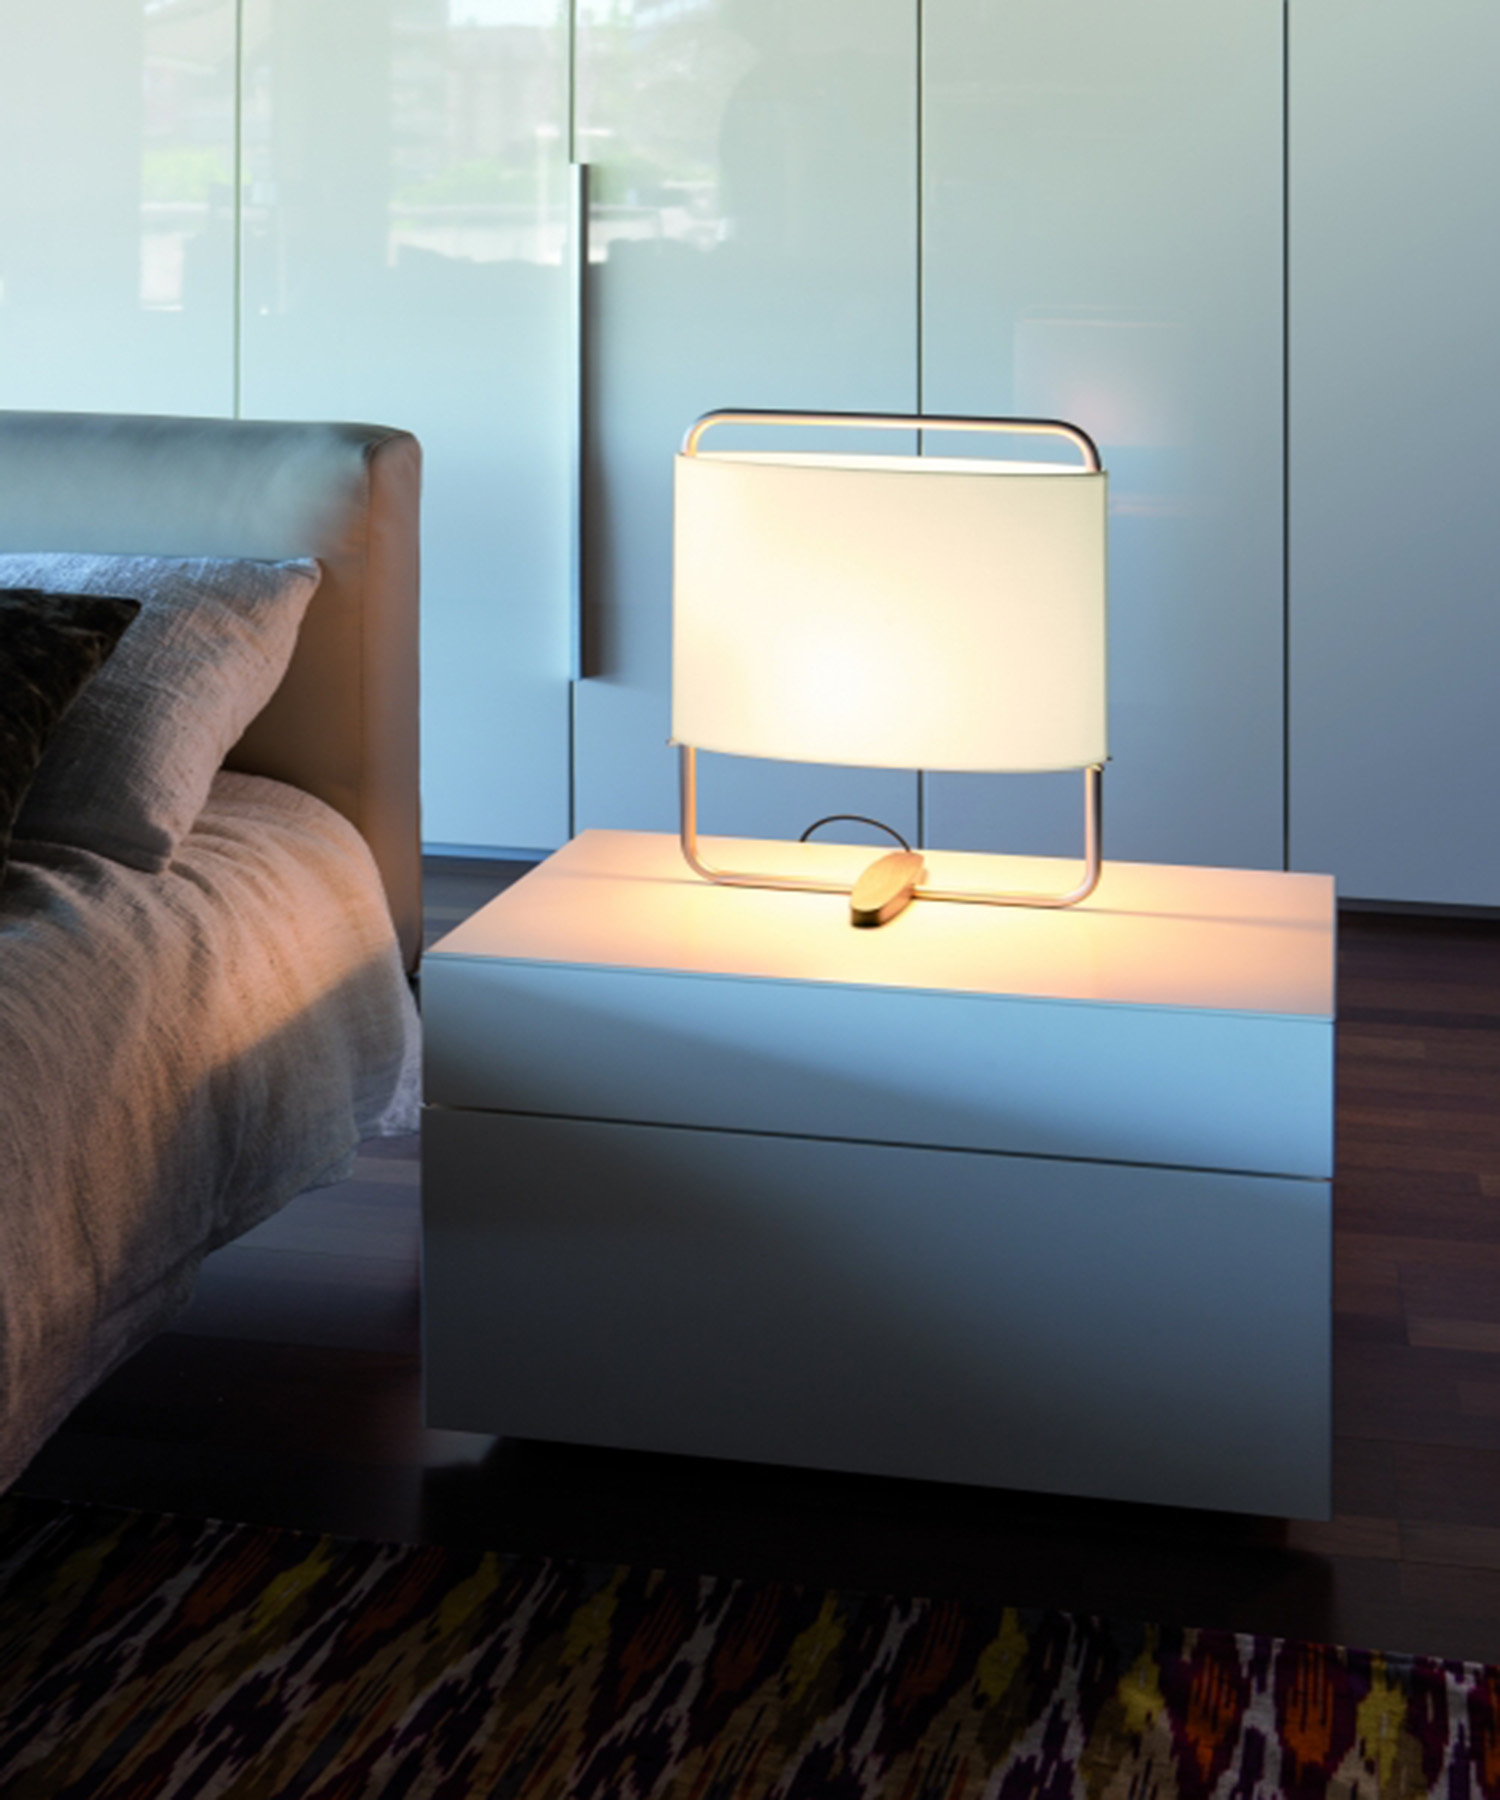 More information of Carpyen - MARGOT table lamp